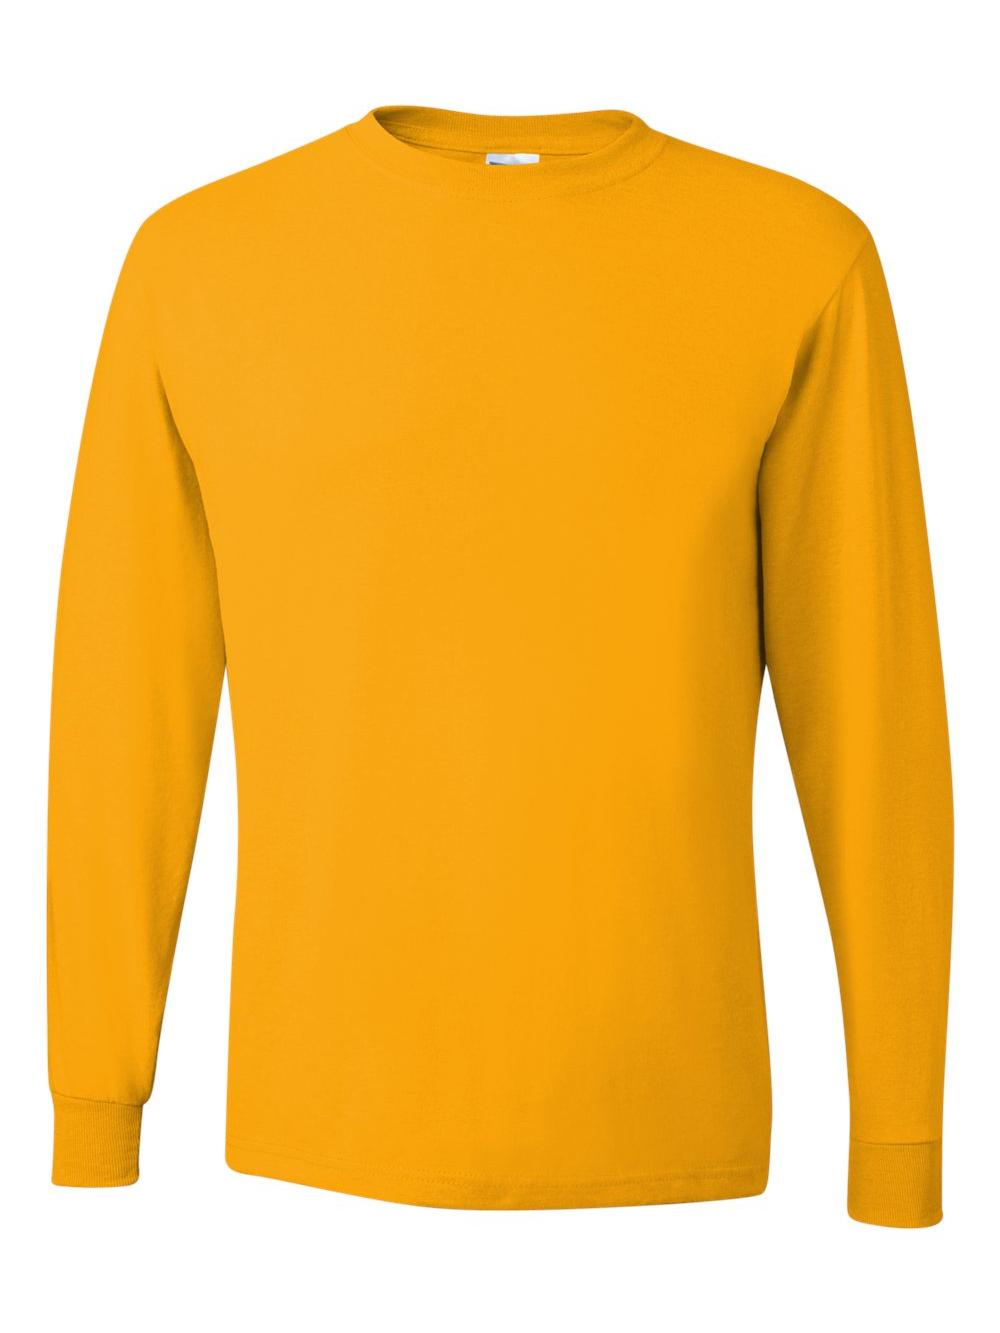 Jerzees Dri-Power Active Long Sleeve 50/50 T-Shirt